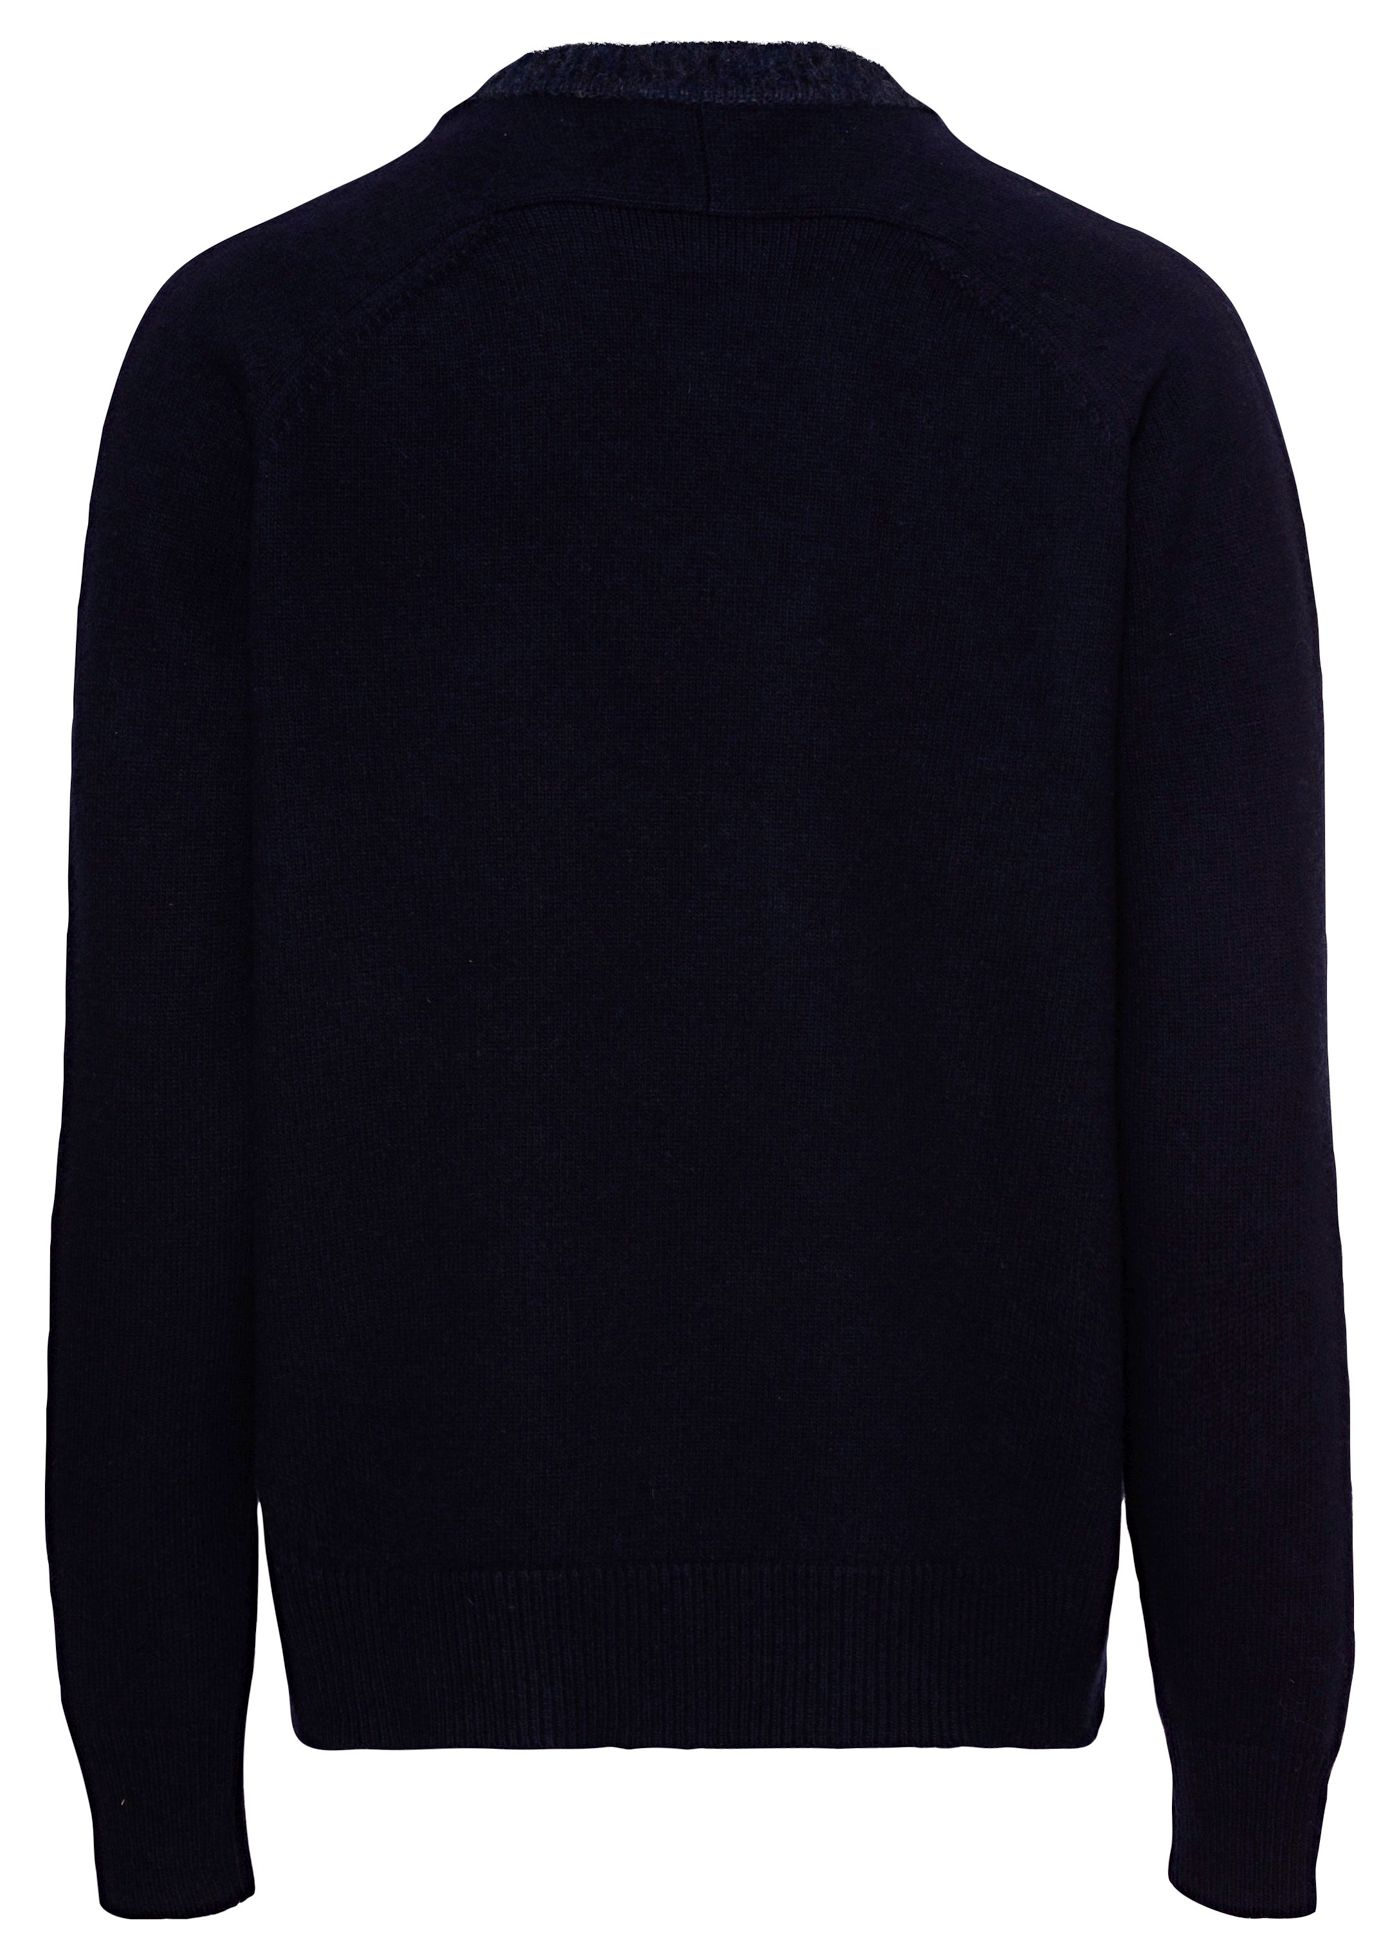 SWEATER HN LS image number 1